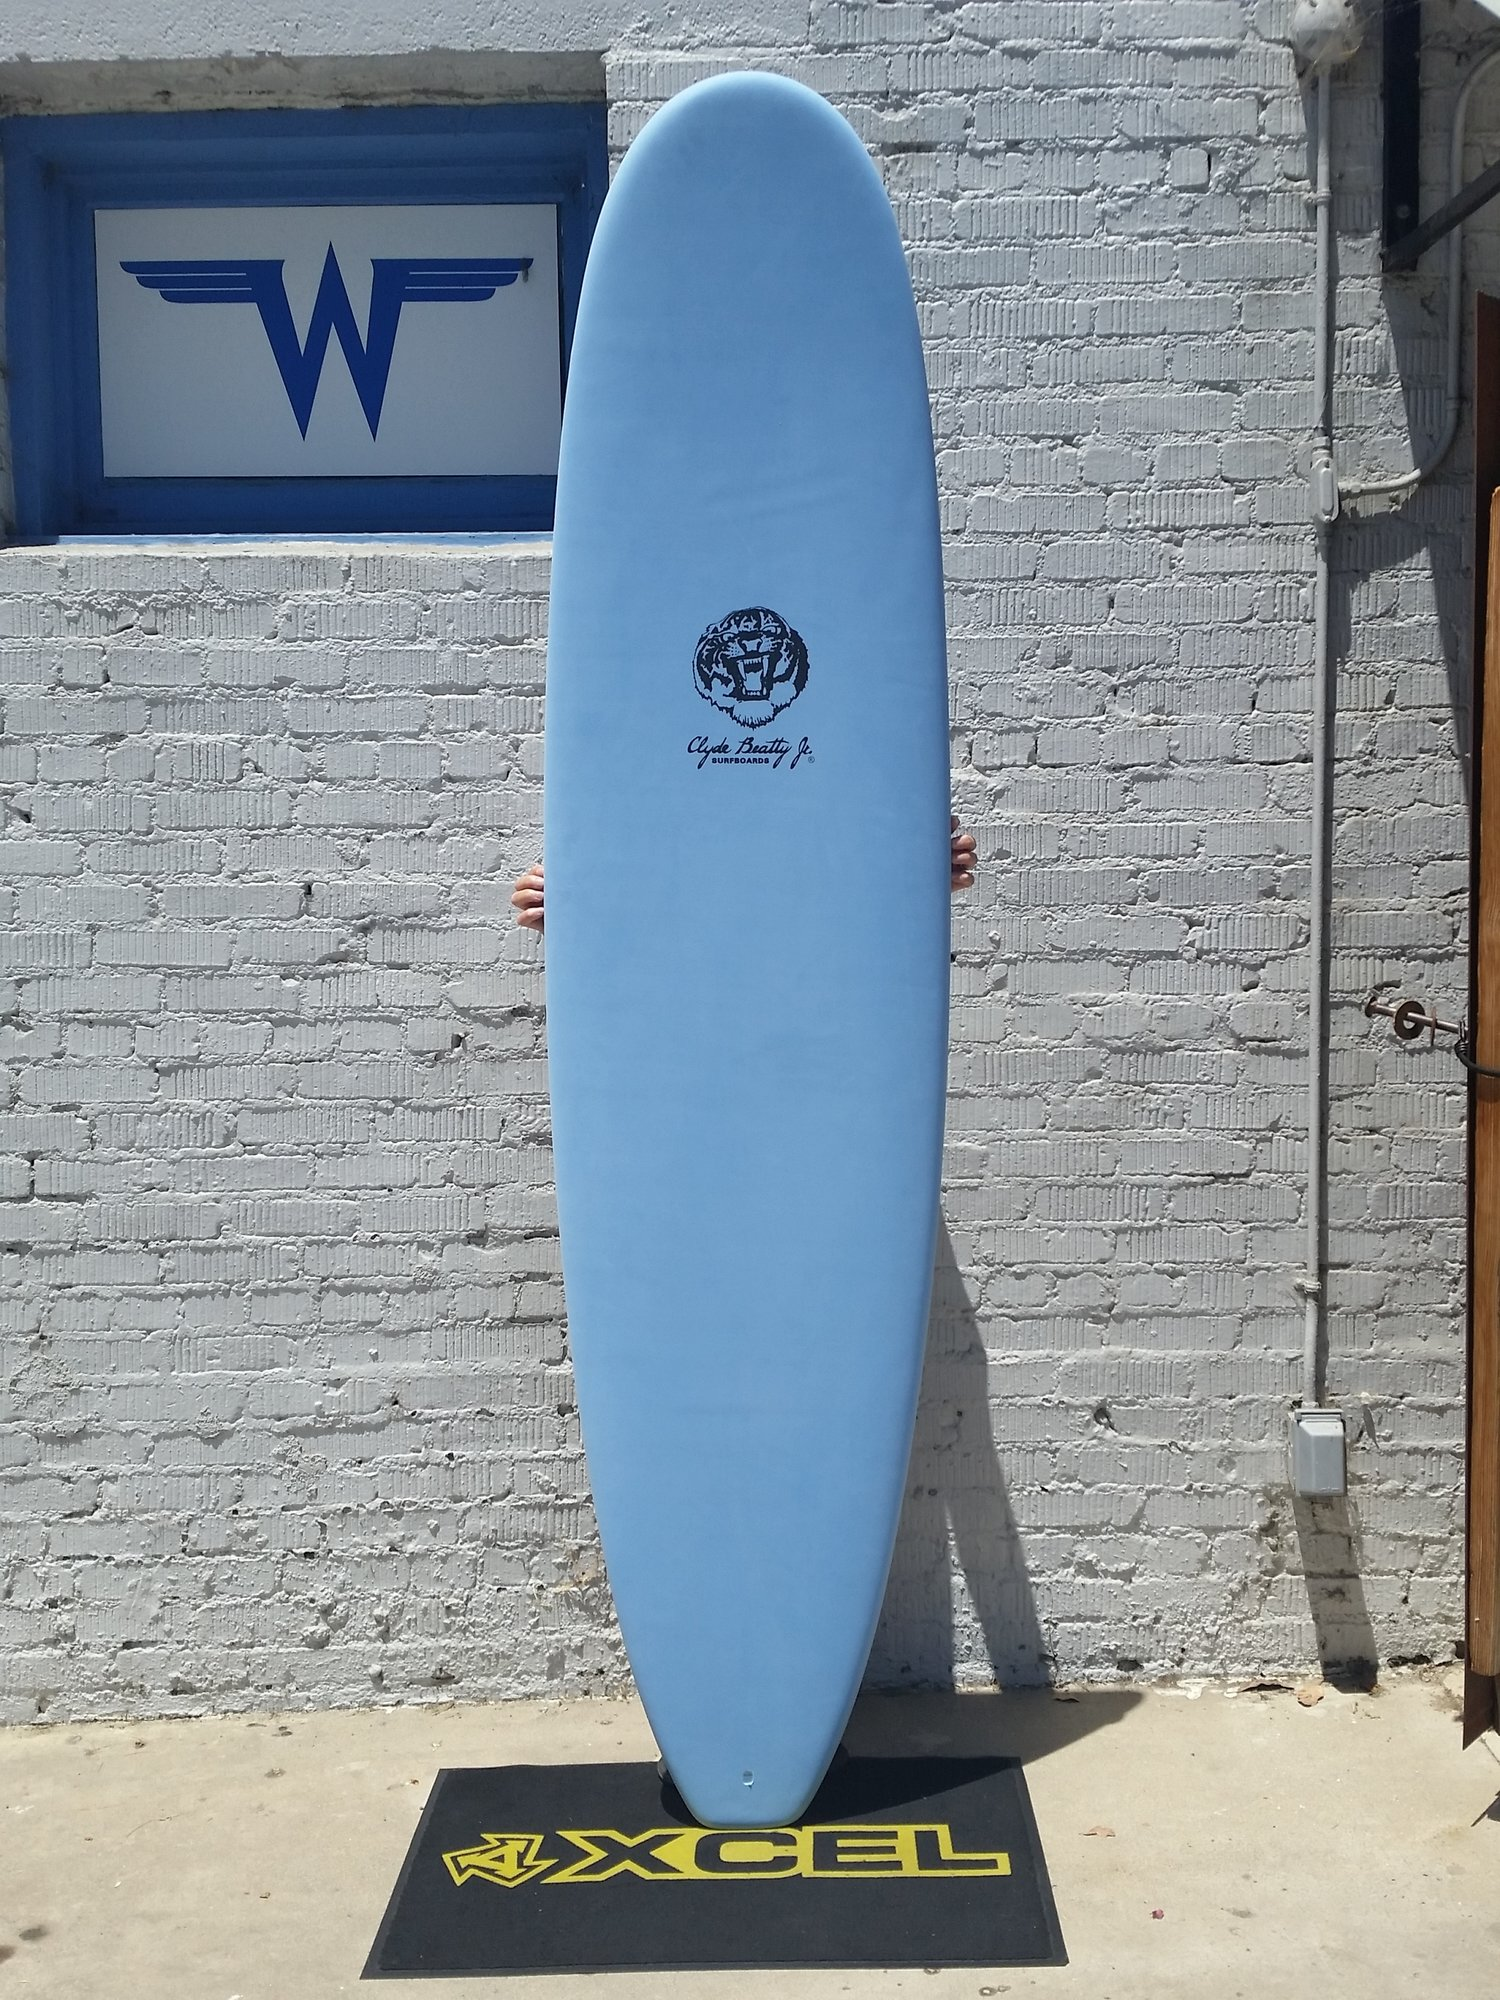 fb8b034b1a Clyde Beatty Surfboards - 8.0